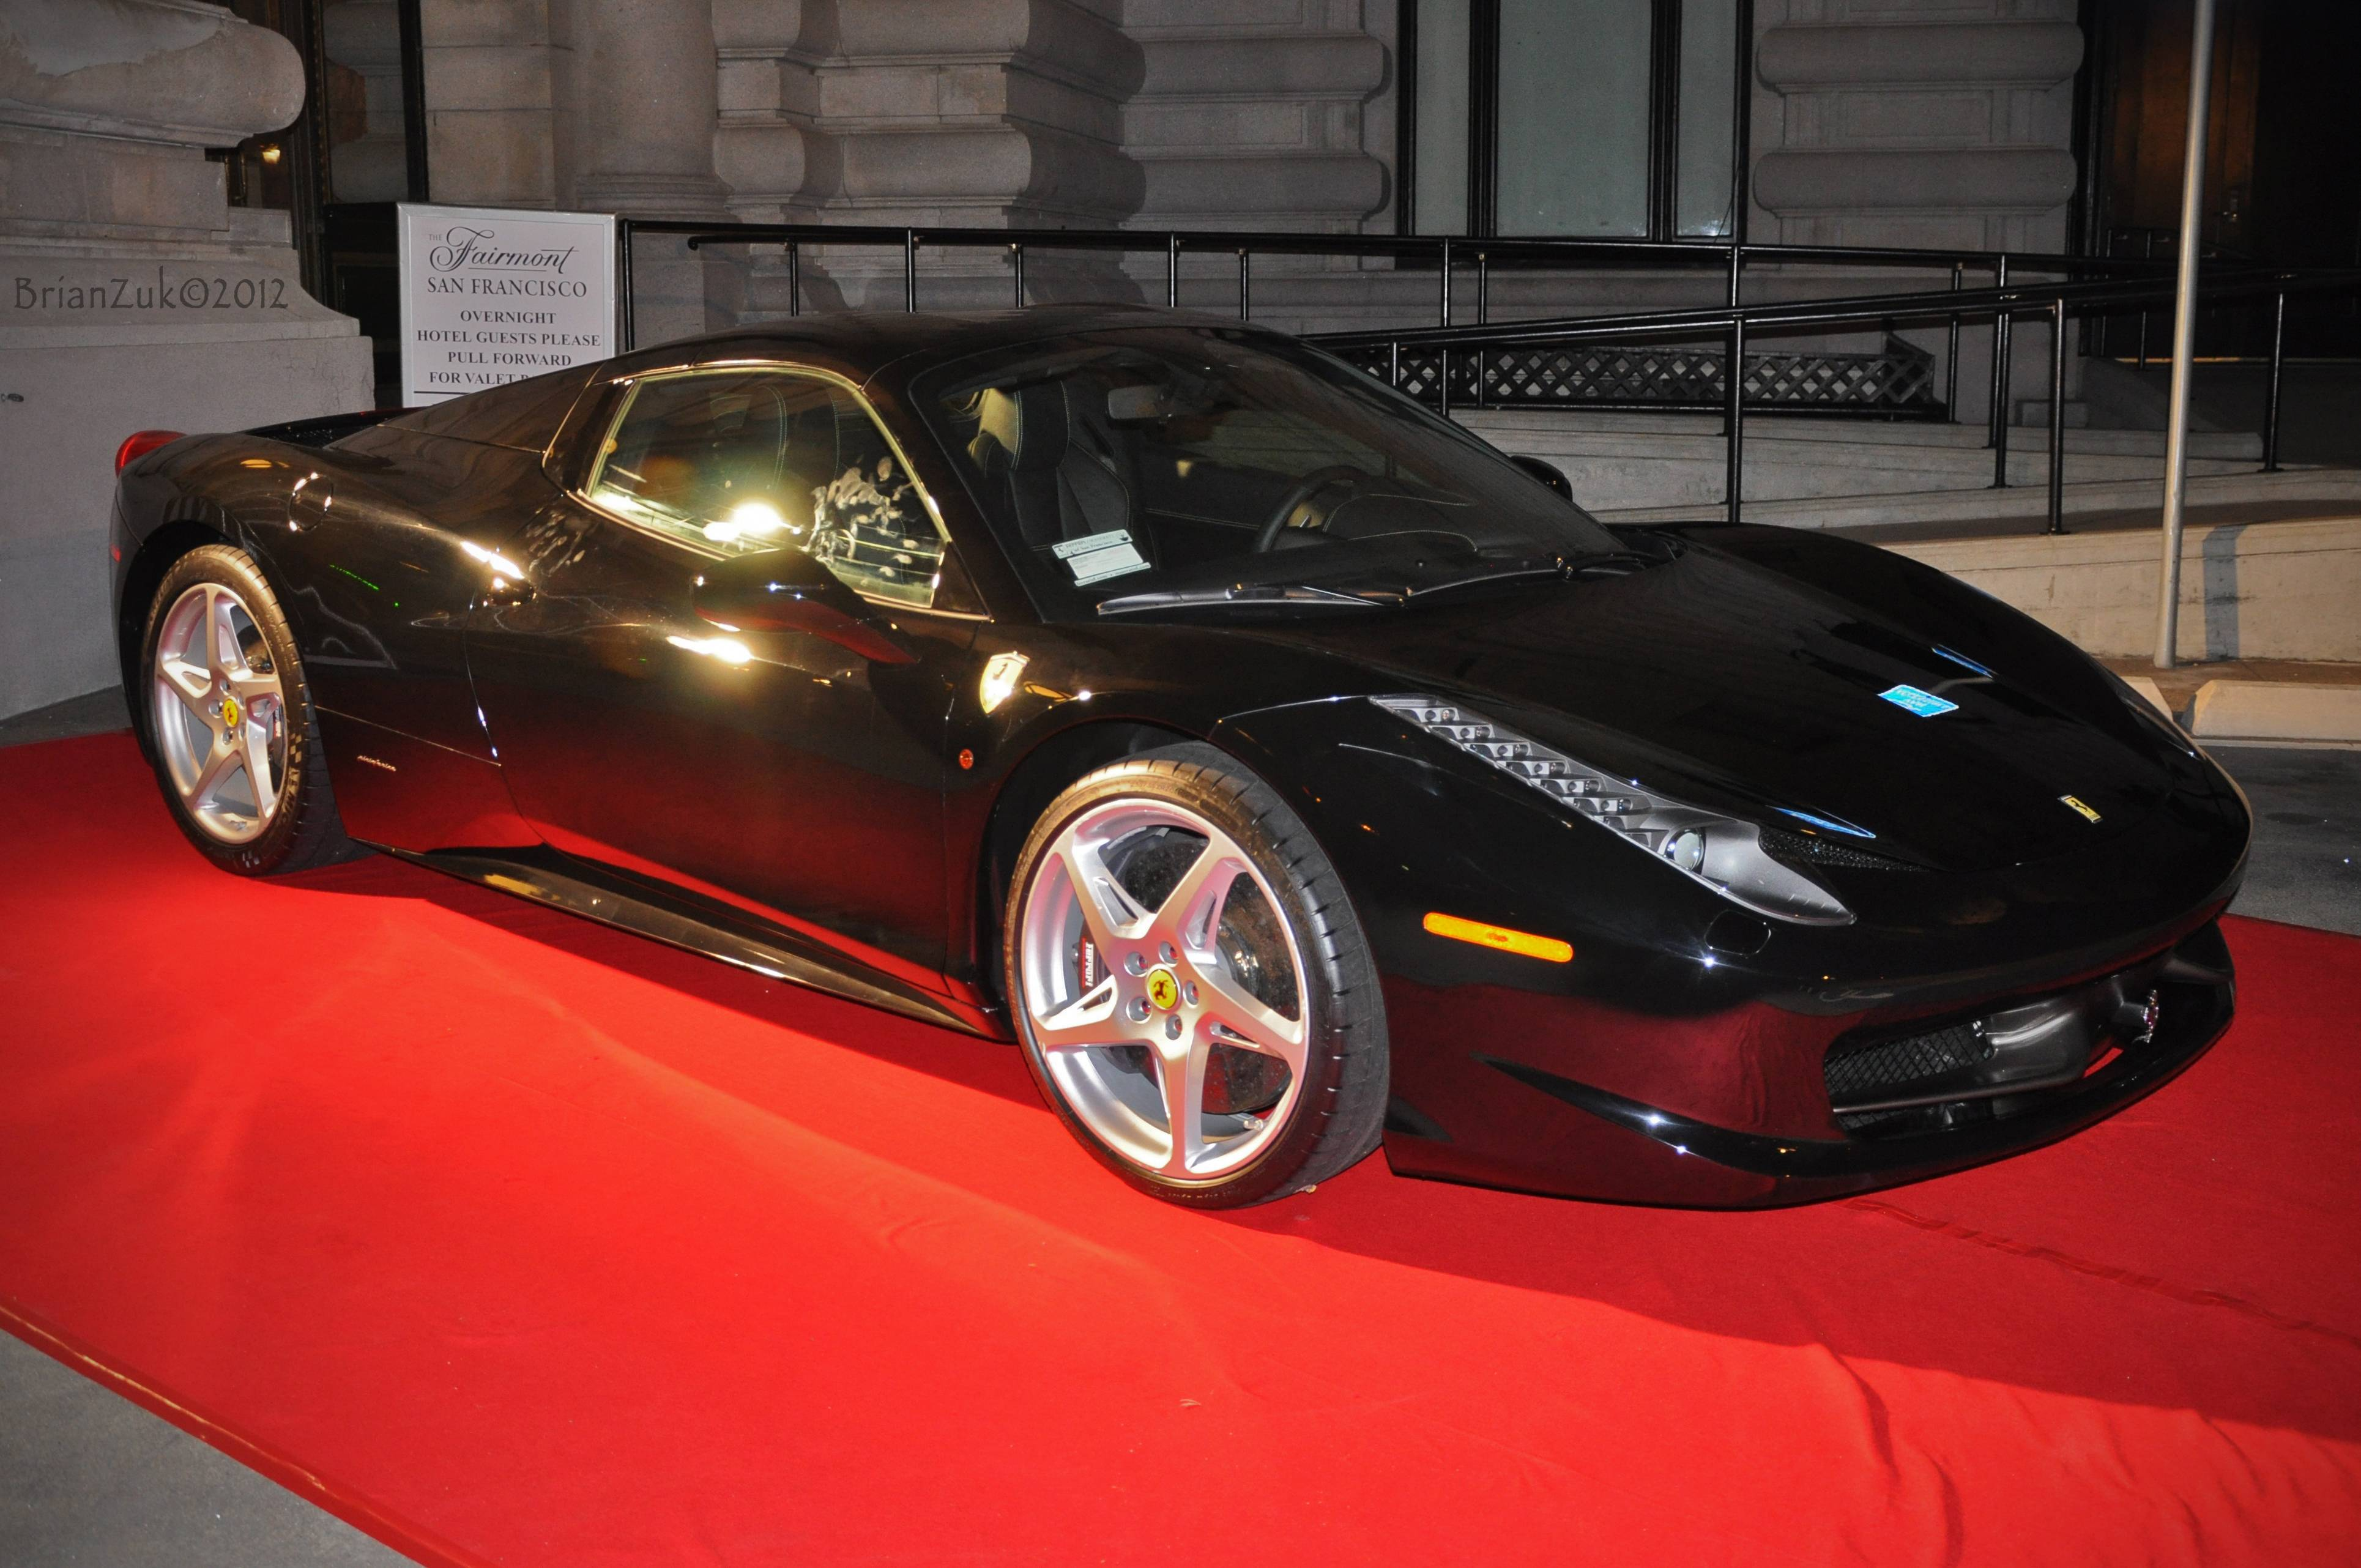 Haute Event – Ferrari SF launch party for 458 Spyder at Fairmount Hotel